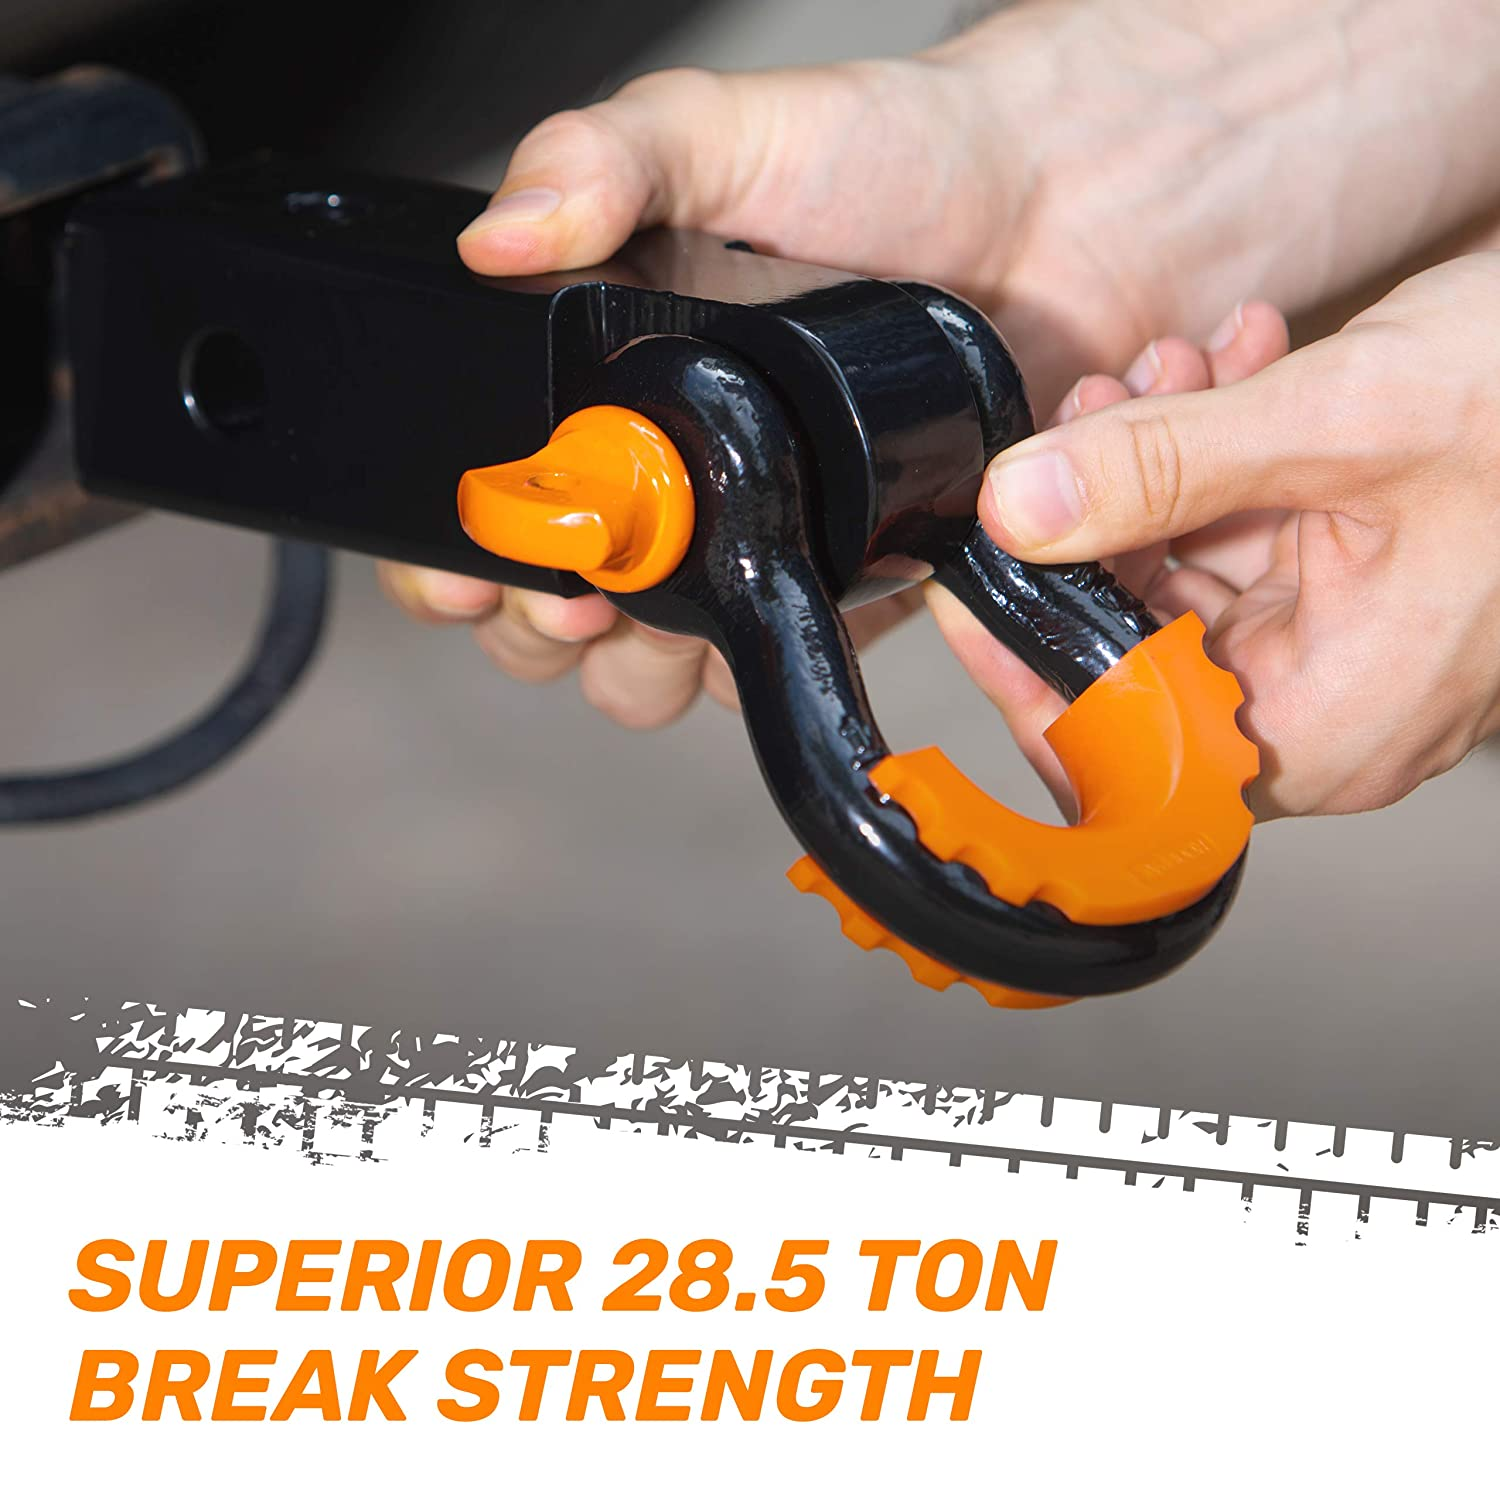 """Mounts to 2/"""" Receivers RoofPax Shackle Hitch Receiver High Strength D-Ring Towing Shackle Hitch 31,000 Lbs Break Strength Capacity Premium Towing Accessory Vehicle Recovery"""